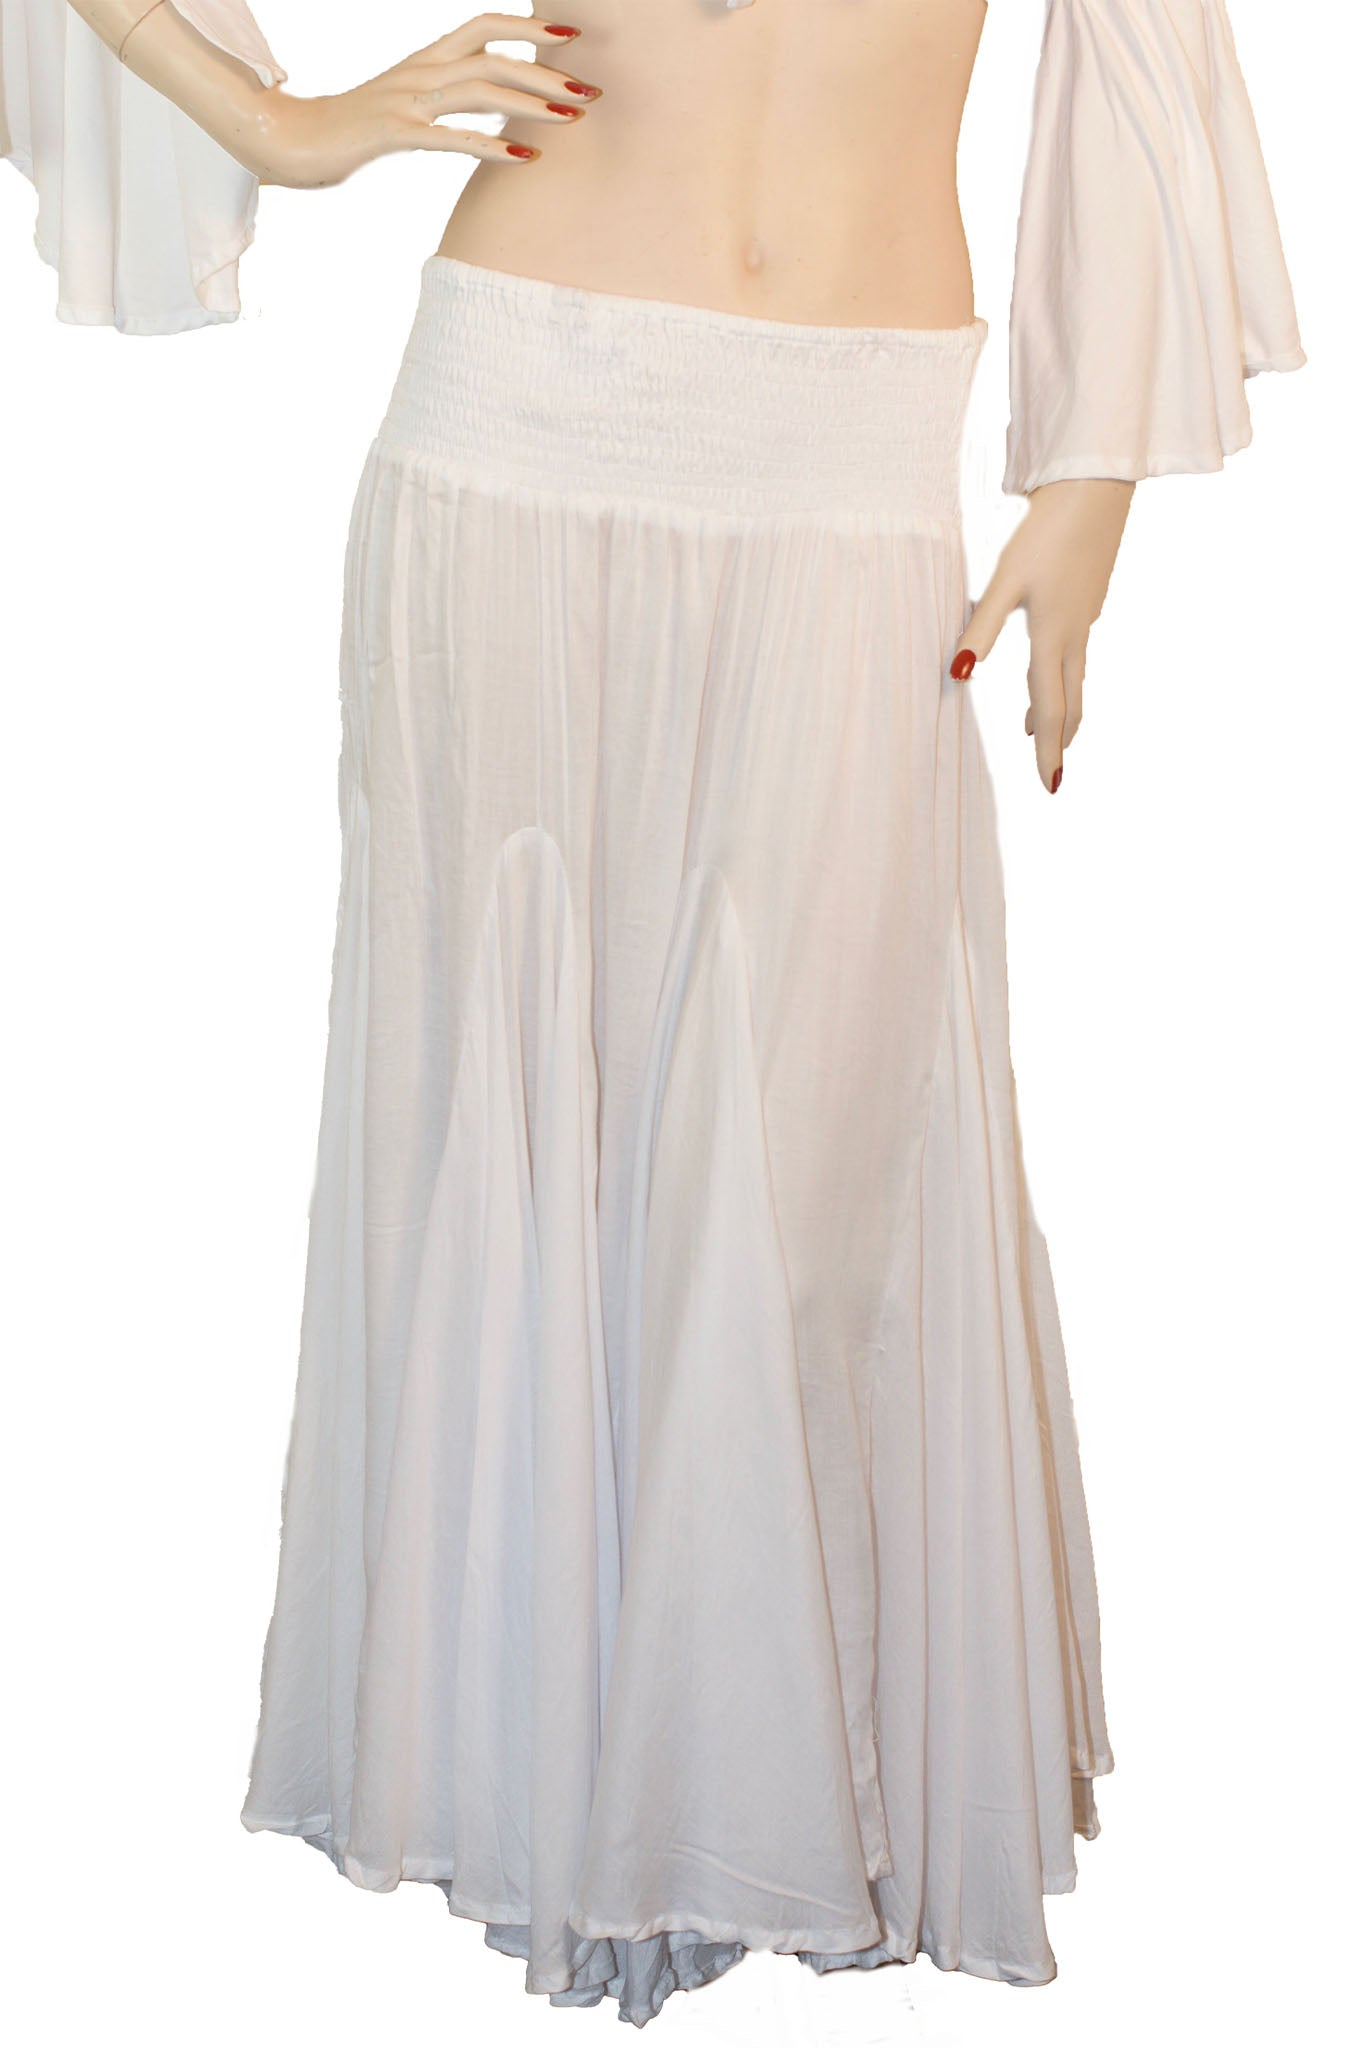 Renaissance Skirt Half Circle Belly Dance Skirt White